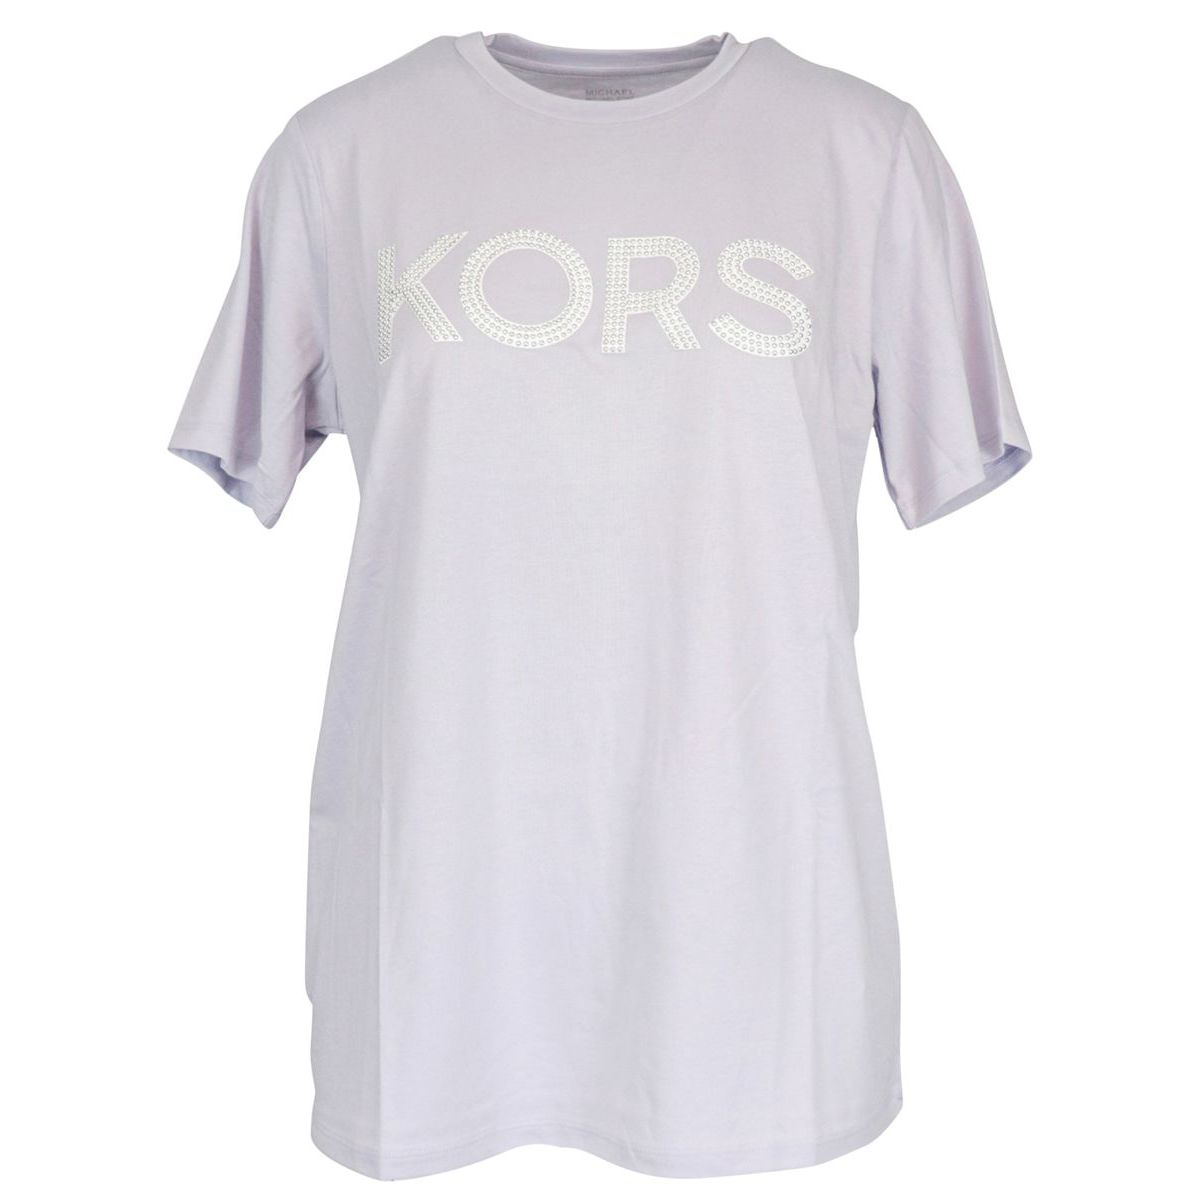 Cotton jersey T-shirt with logo and studs Lavender Michael Kors